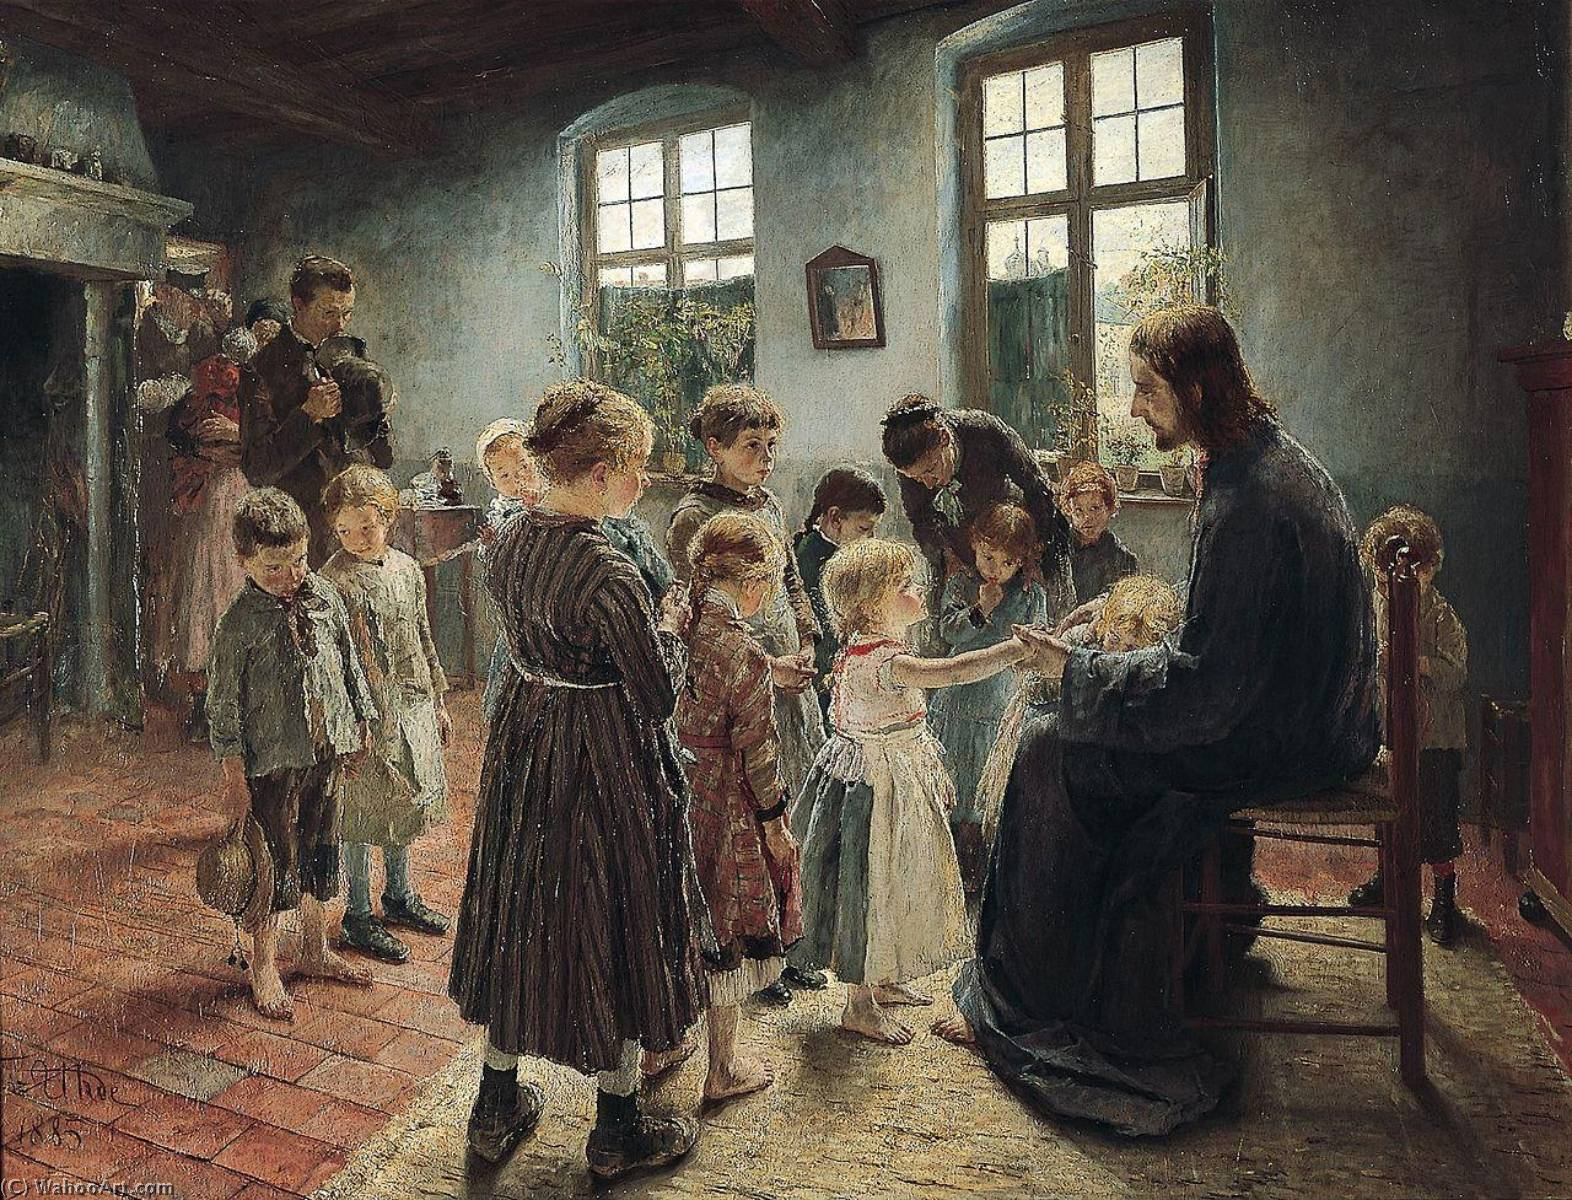 Let the Children Come, Oil On Canvas by Fritz Von Uhde (1848-1911)